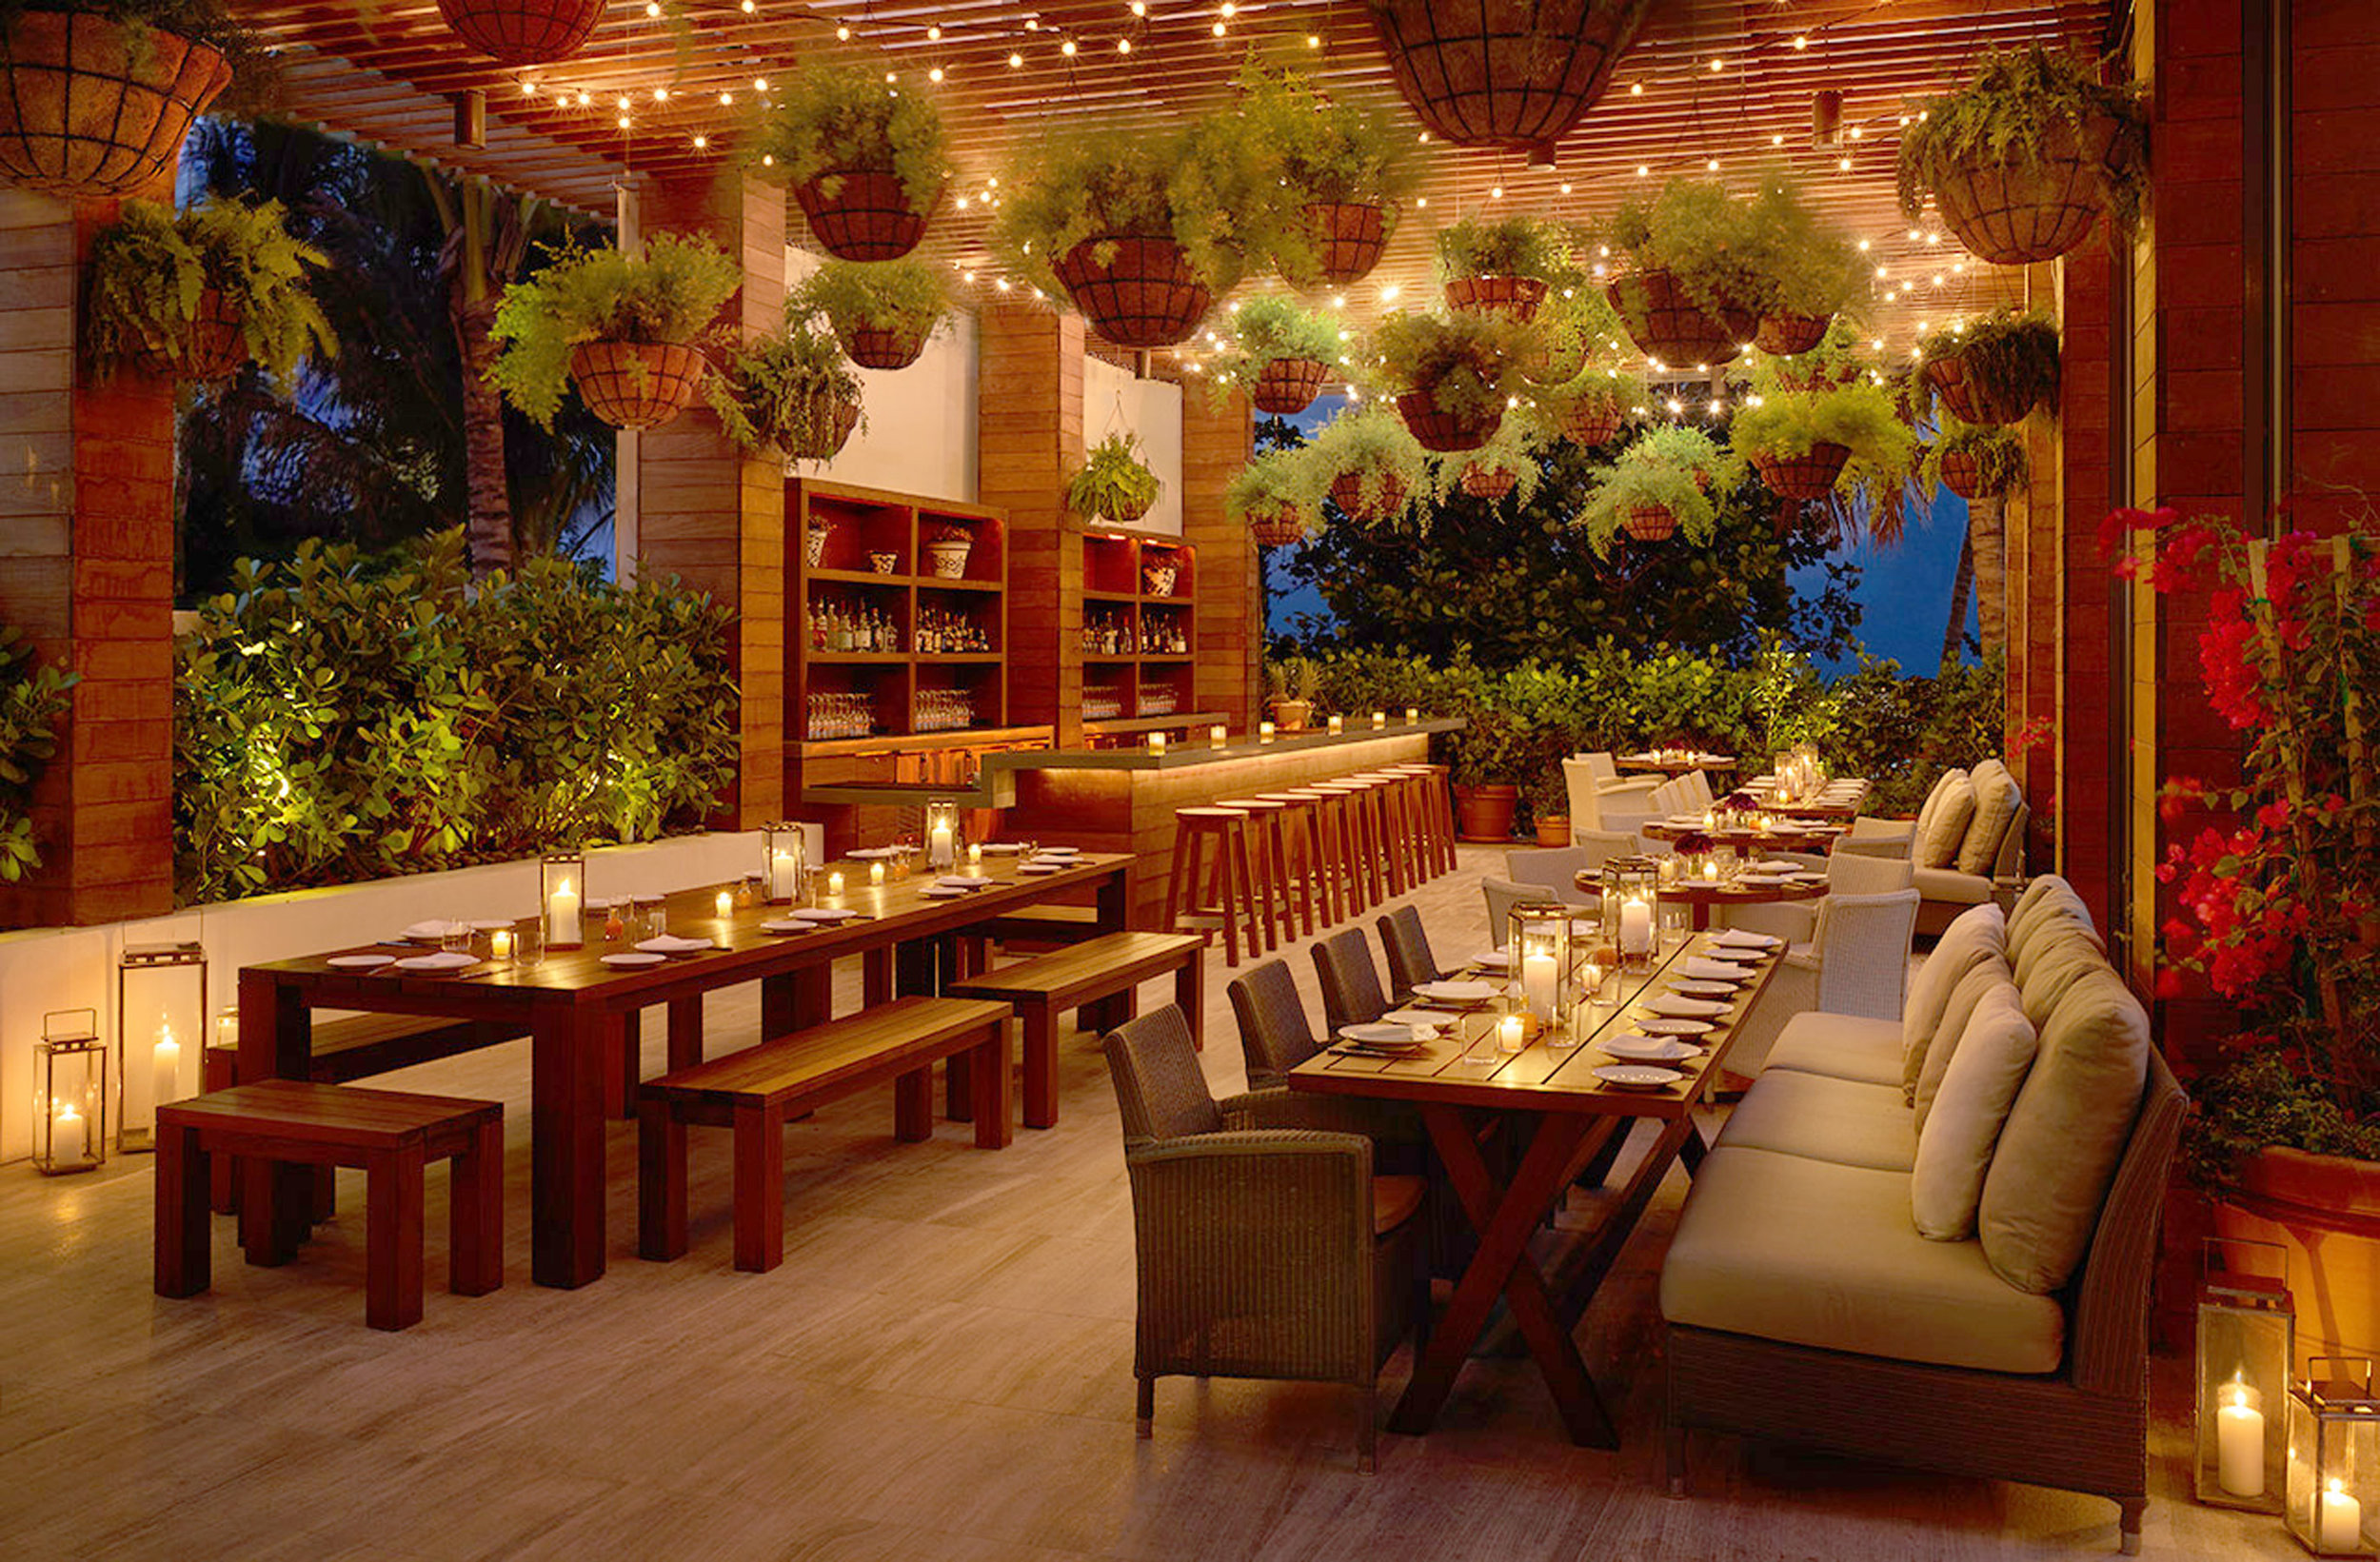 Outdoor dining at Miami Edition